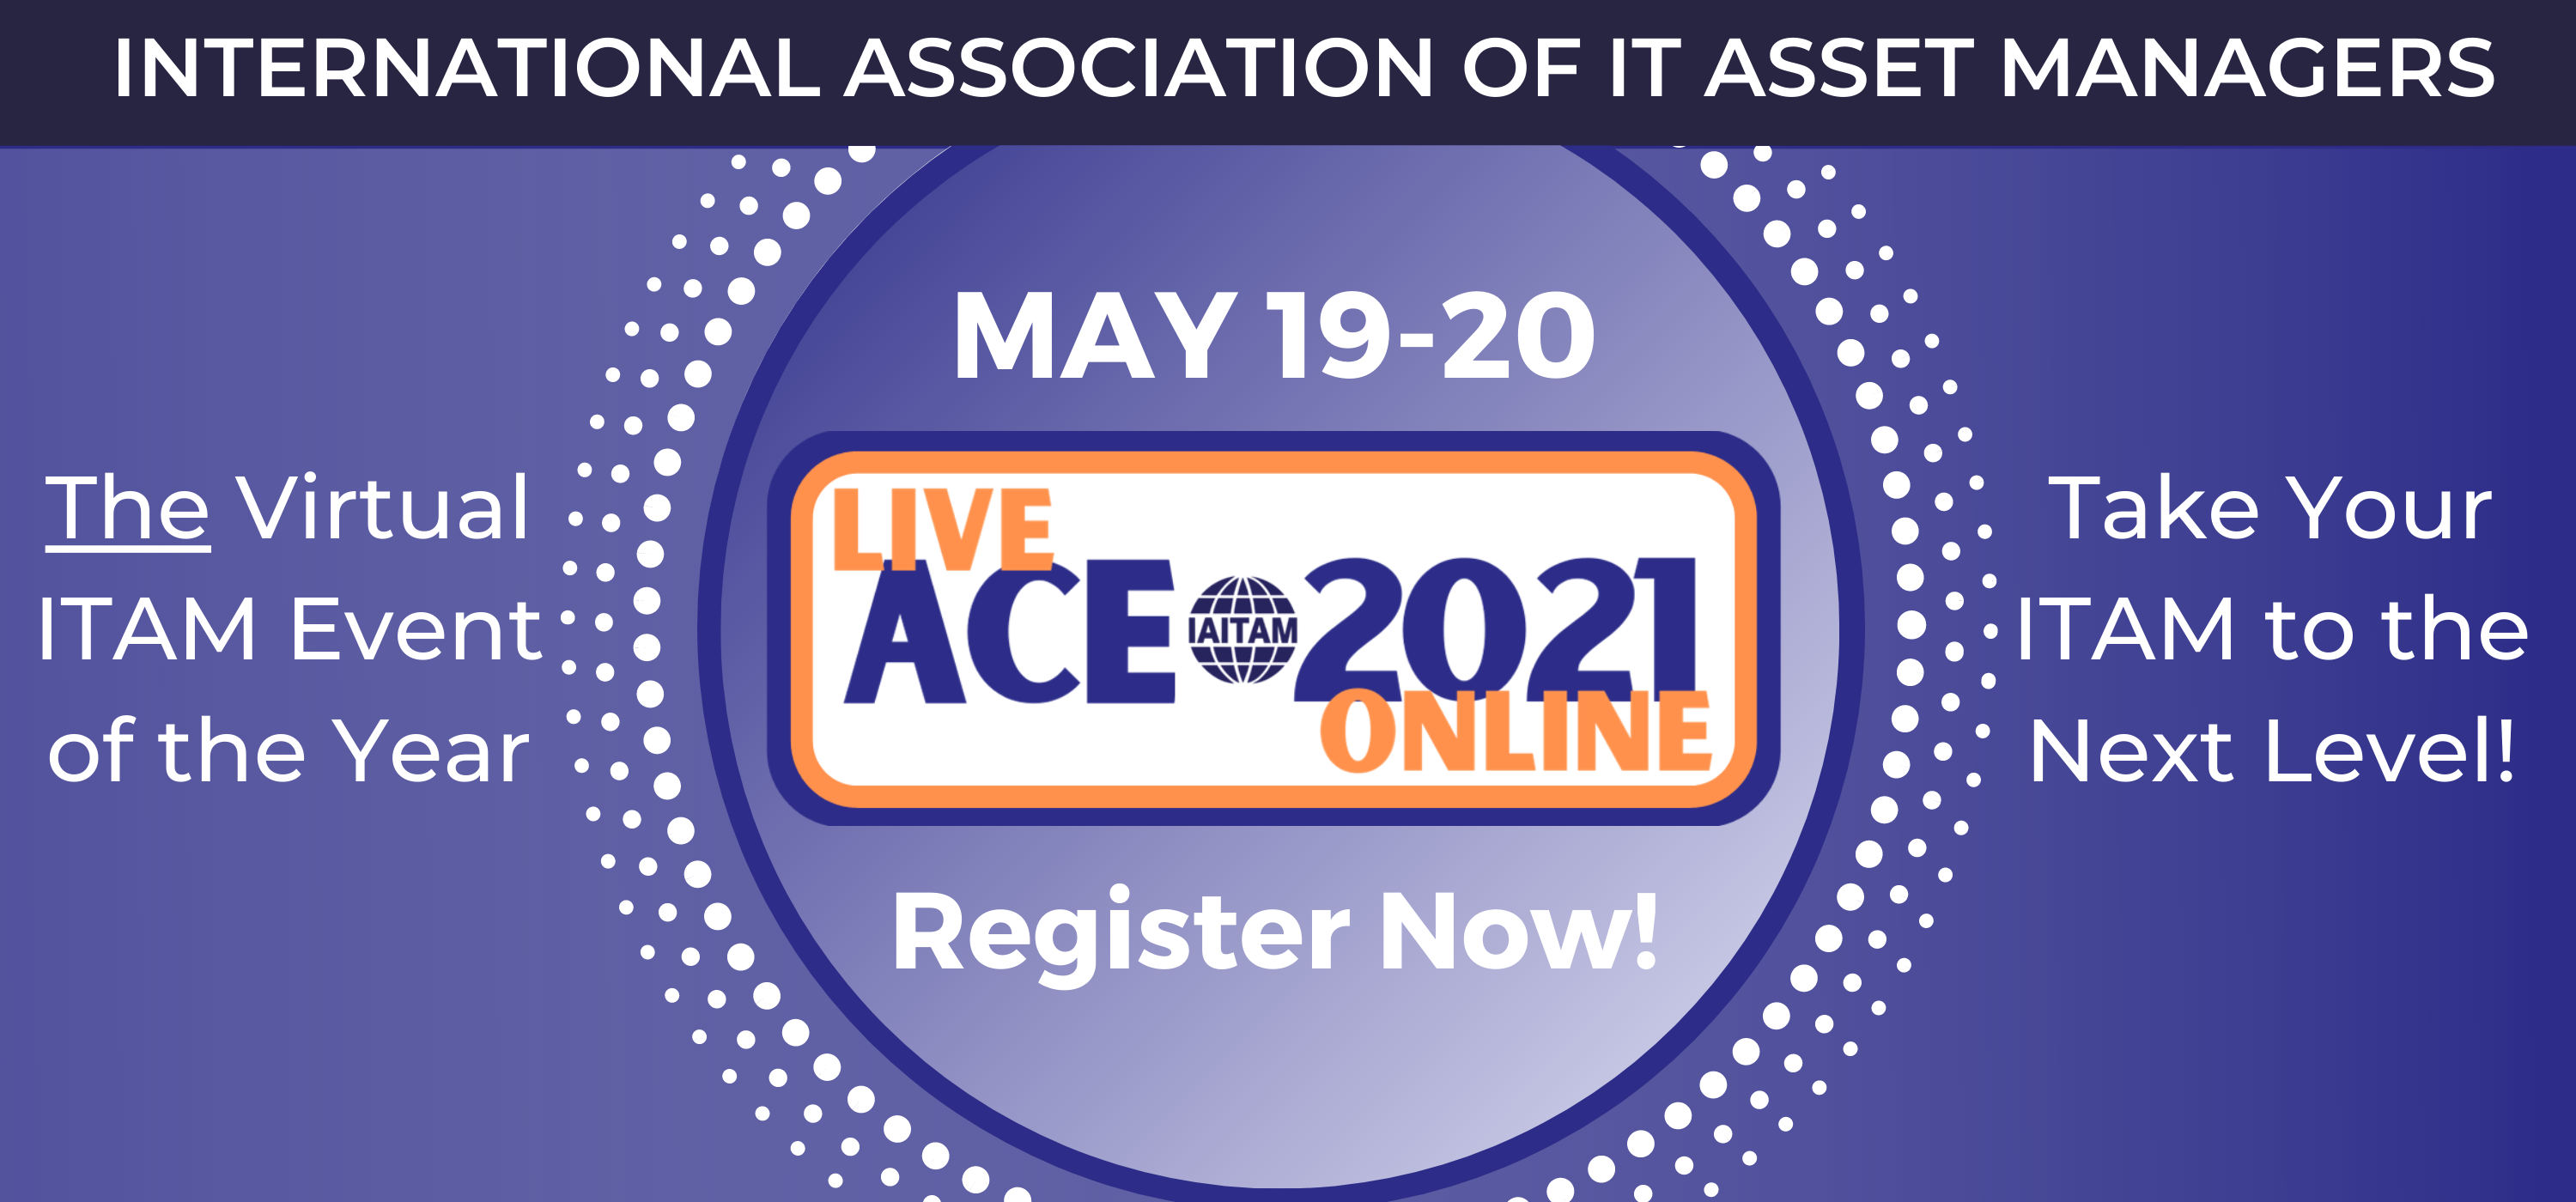 Join us at the 2021 Spring ACE, the virtual ITAM event of the year